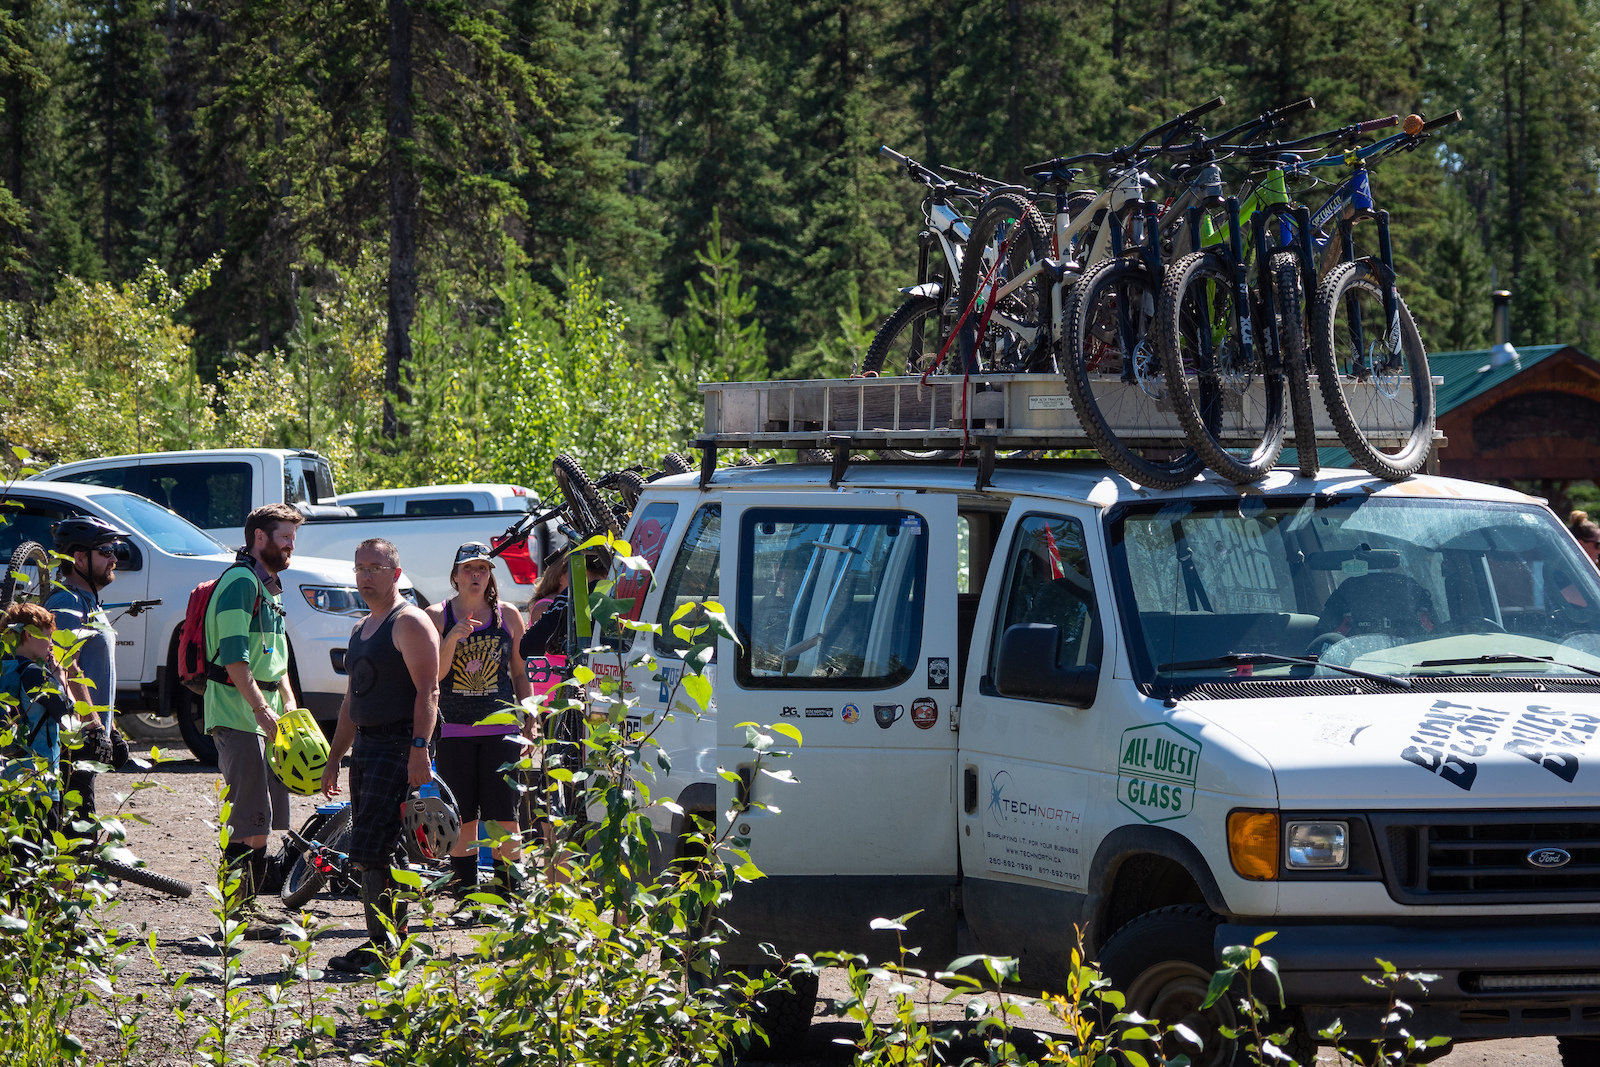 The local crew in Burns Lake are some of the most welcoming people in mountain biking - always making sure the van is packed with friends old and new.